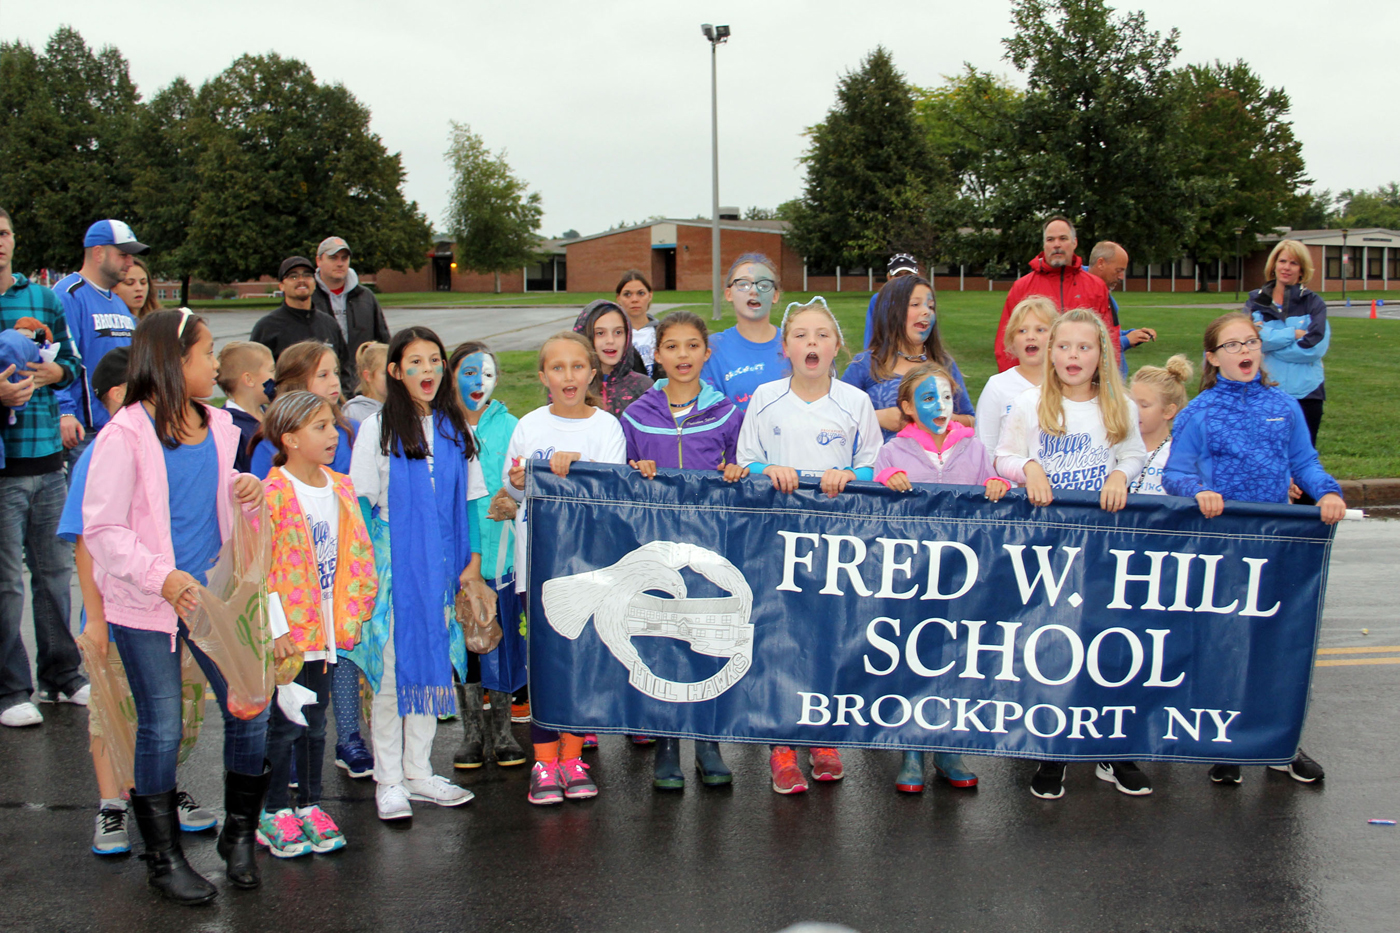 Hill School students perform in the 2016 Brockport Central School District Homecoming Parade. Provided photo